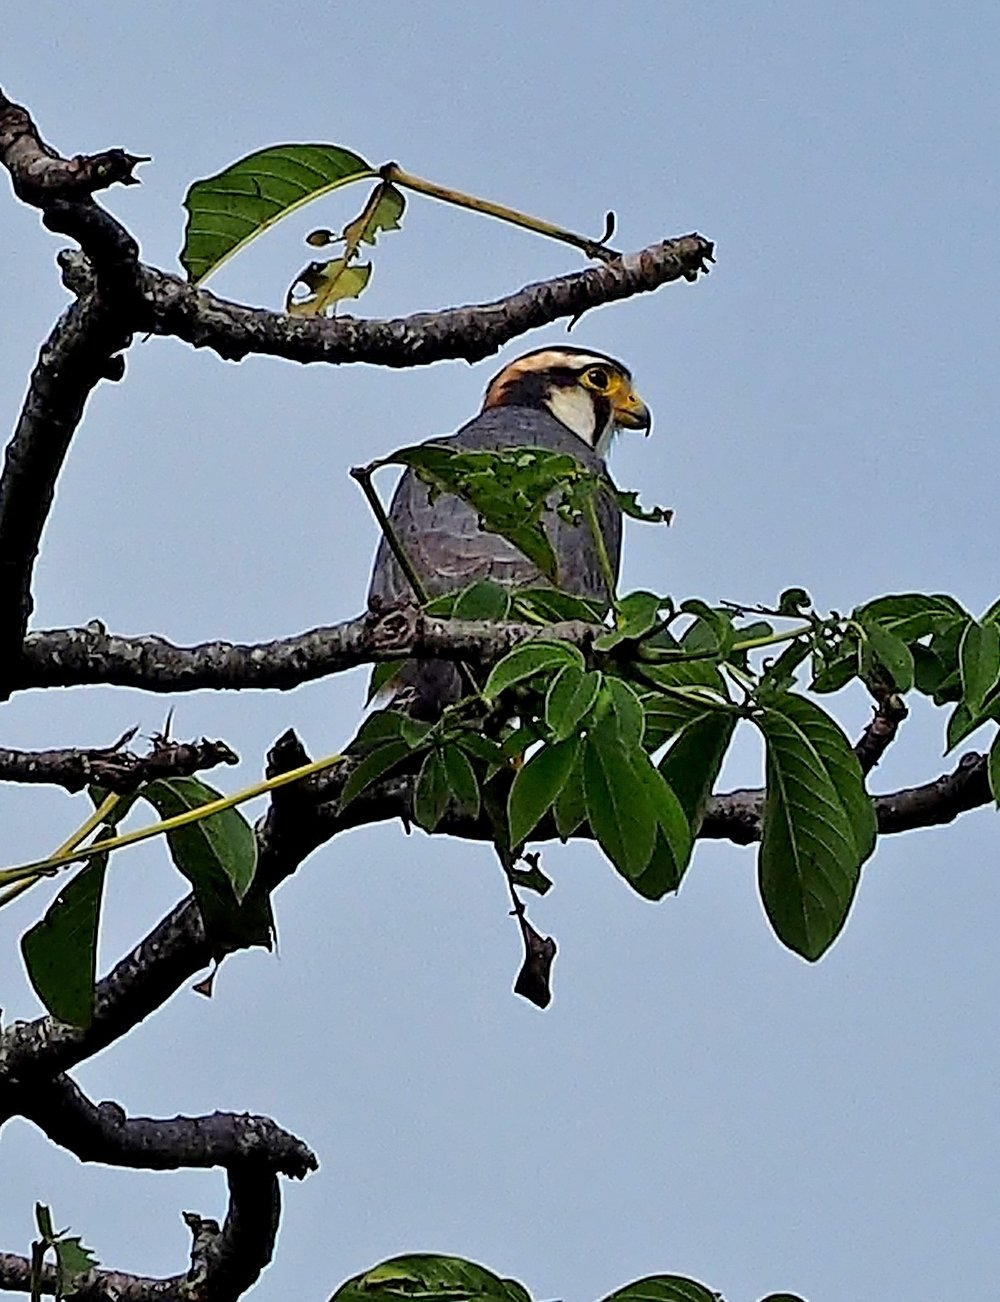 Aplomado falcon perched in tree, photo by Brian Moroney.